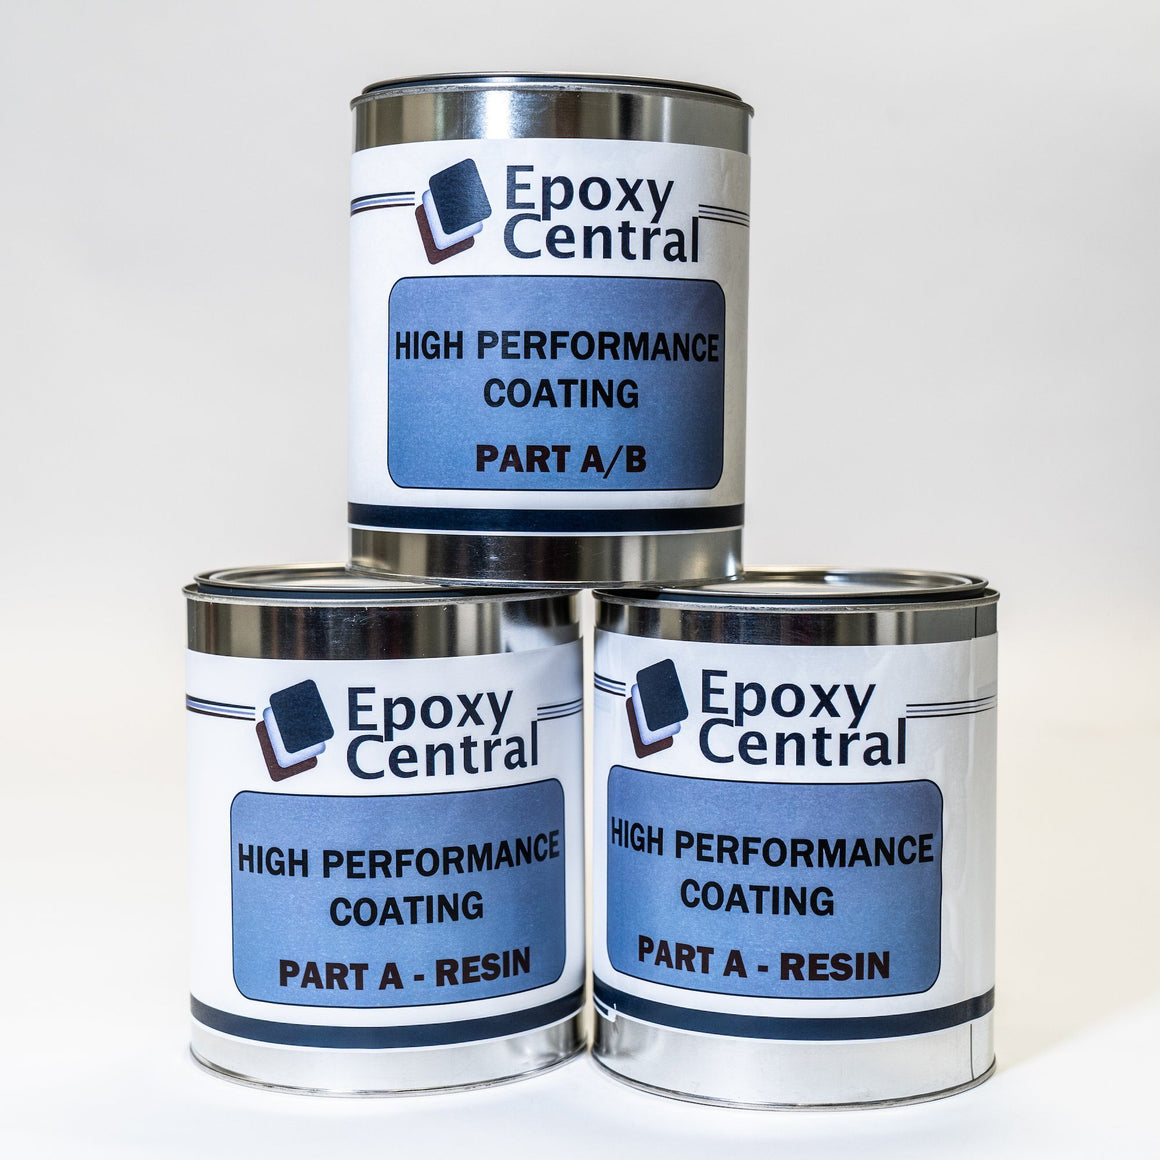 Topcoat - Chemical Resistant Epoxy Novolac Topcoat